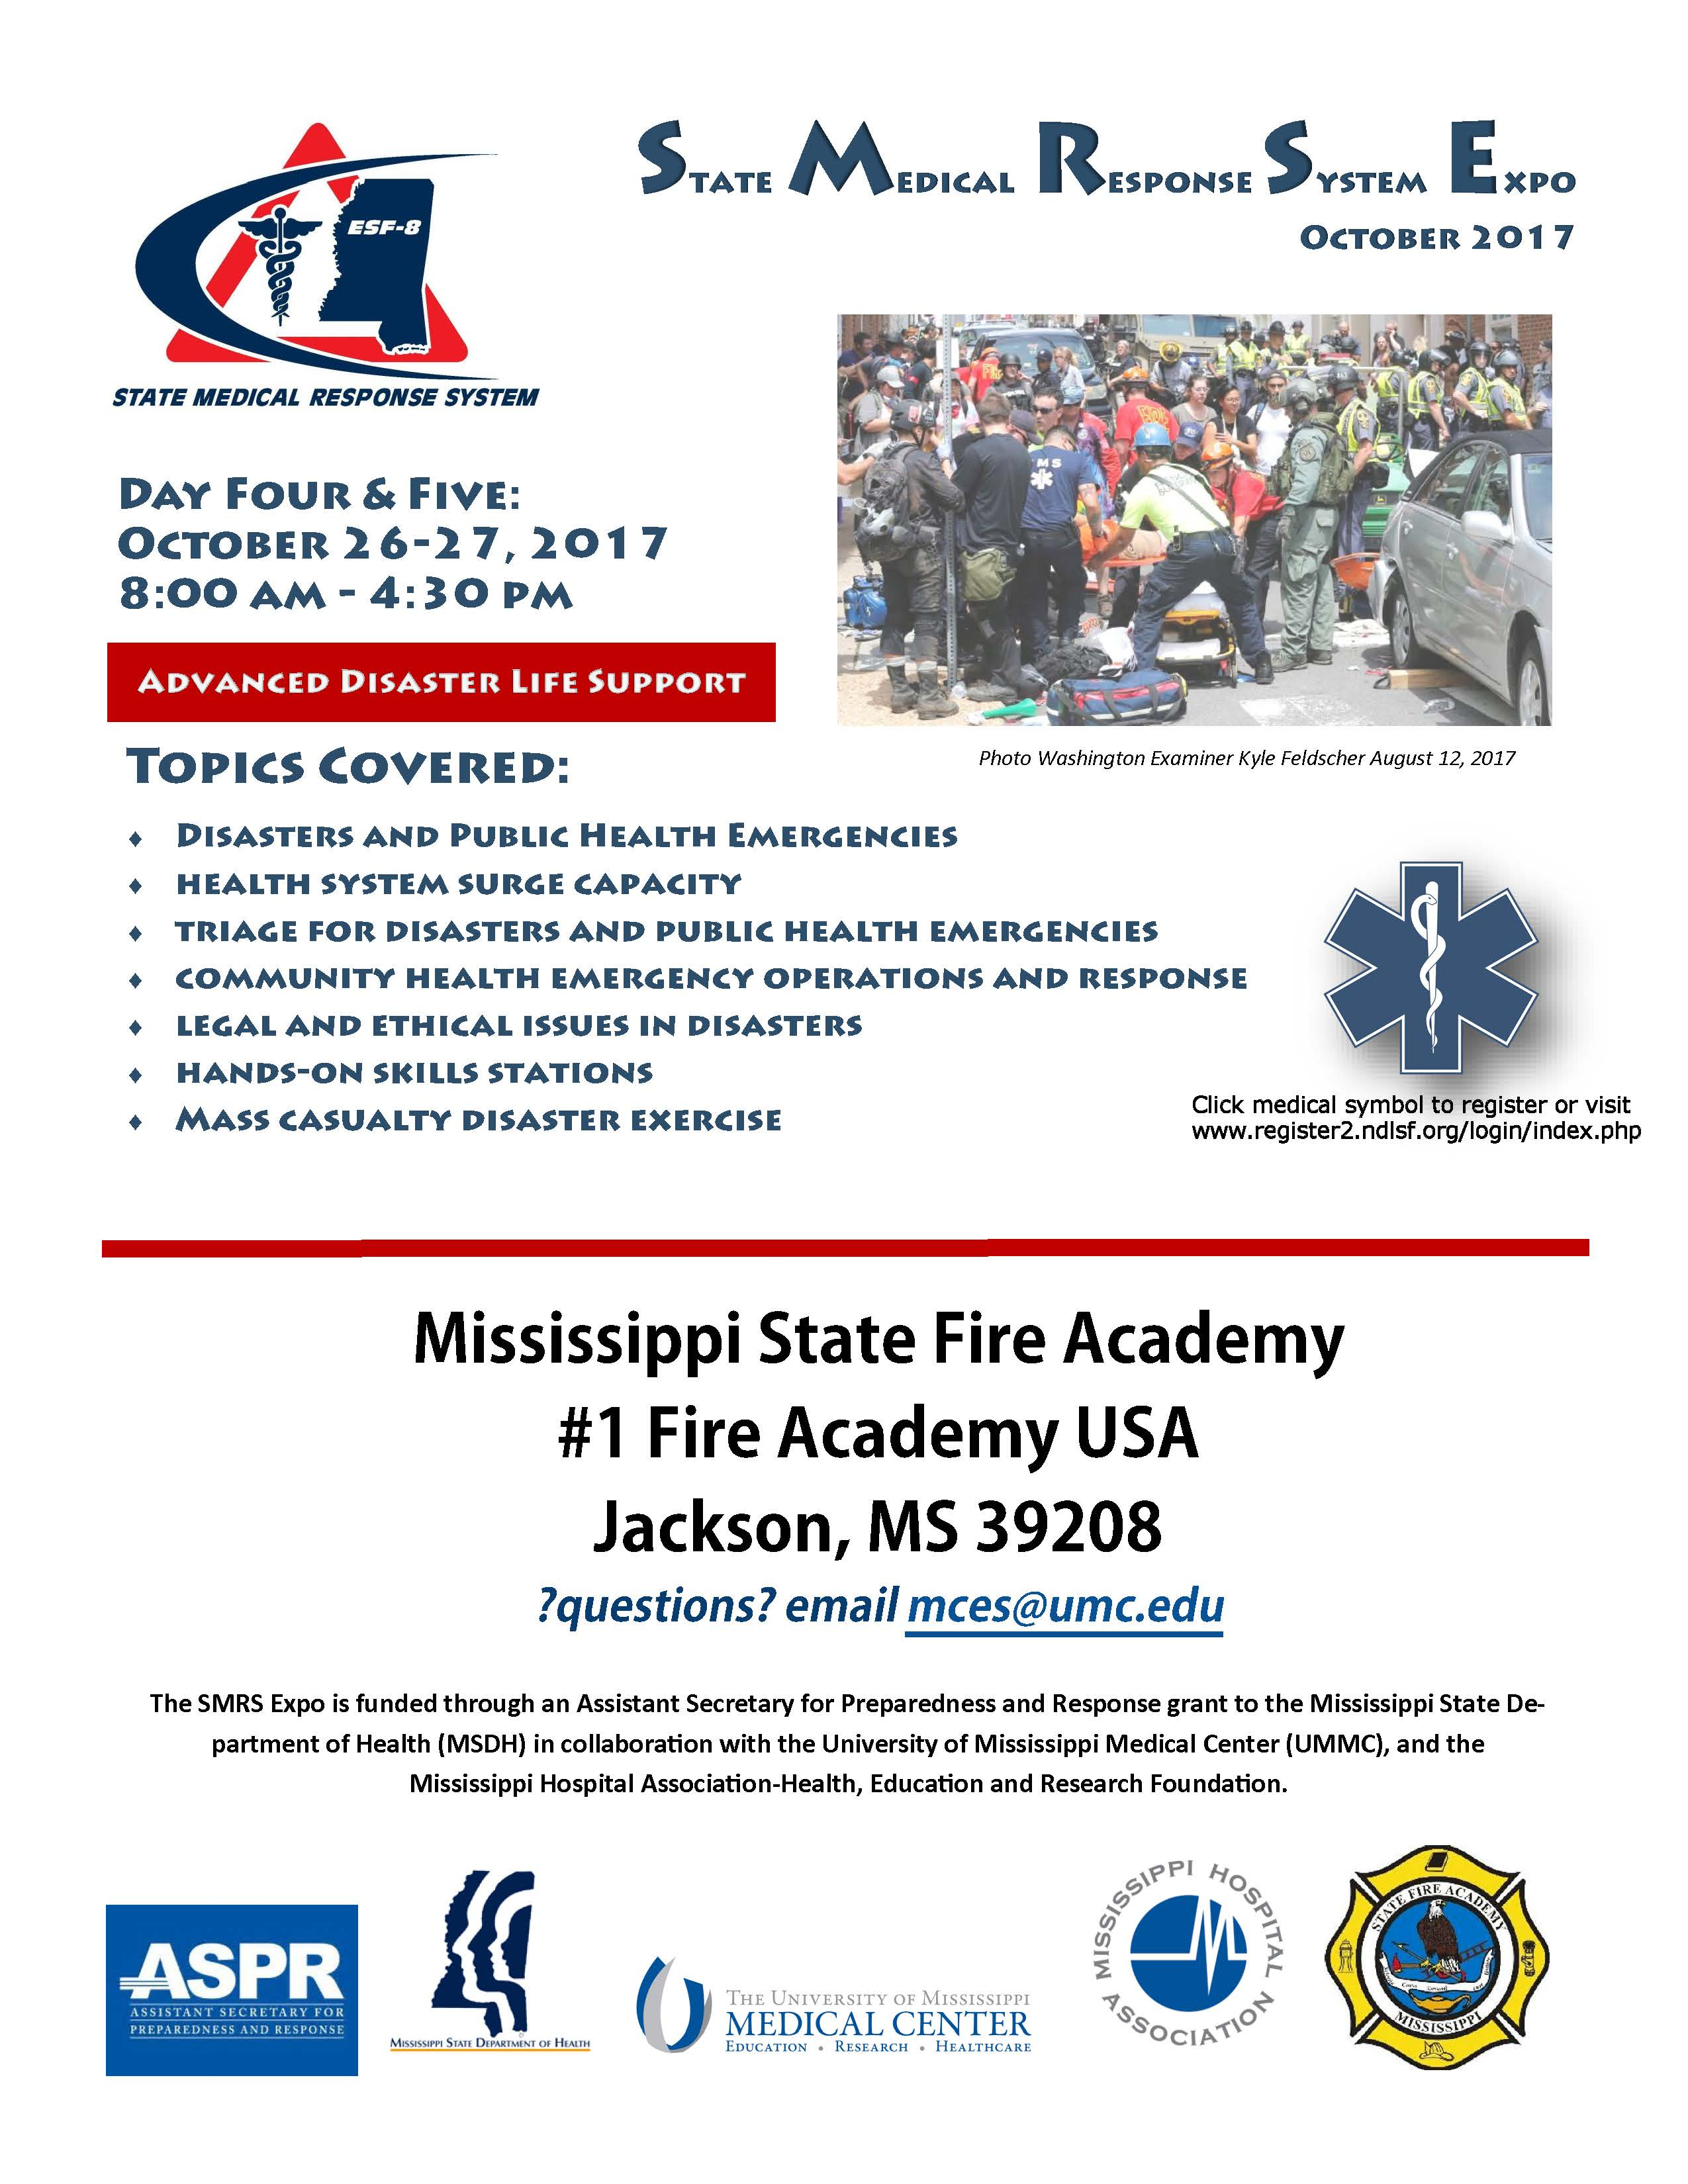 final-day-4-and-5-adls-smrs-expo-oct.-2017-msfa-flyer-002.jpg